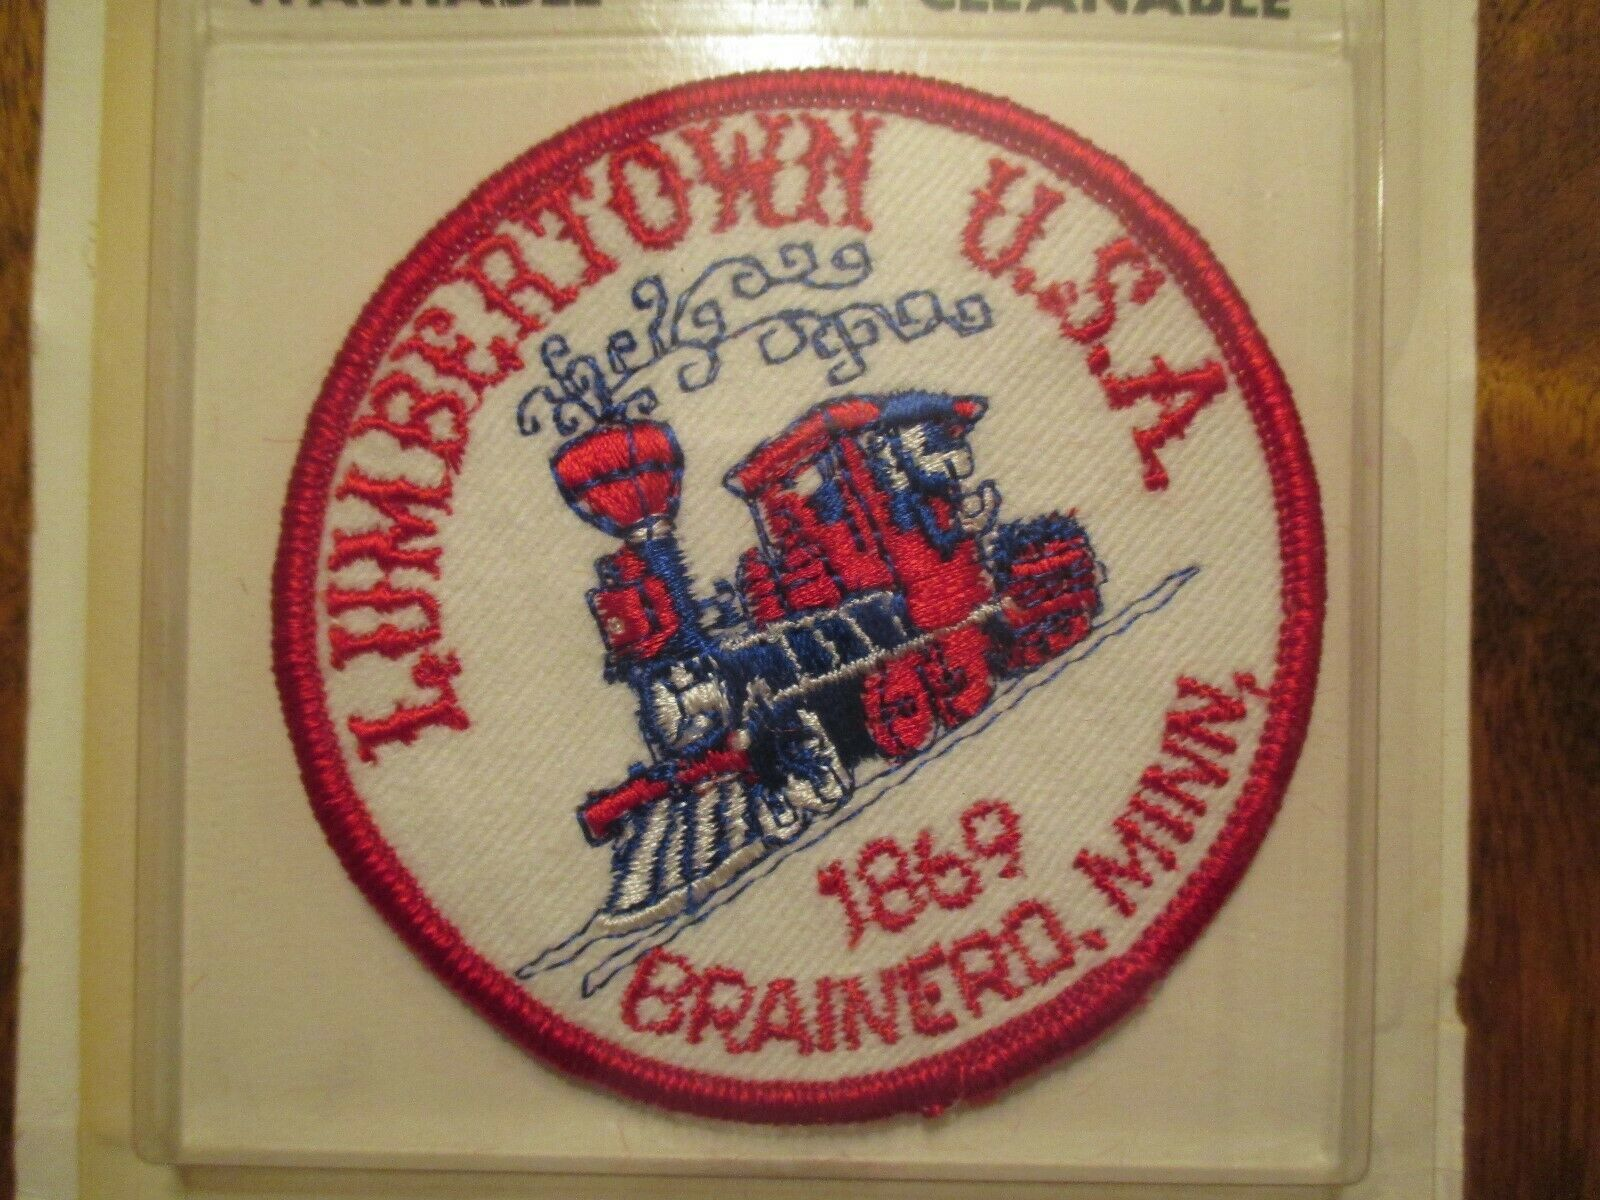 Brainerd Minnesota Lumbertown USA Embroidered Emblems Sealed Sew on Travel Patch image 2